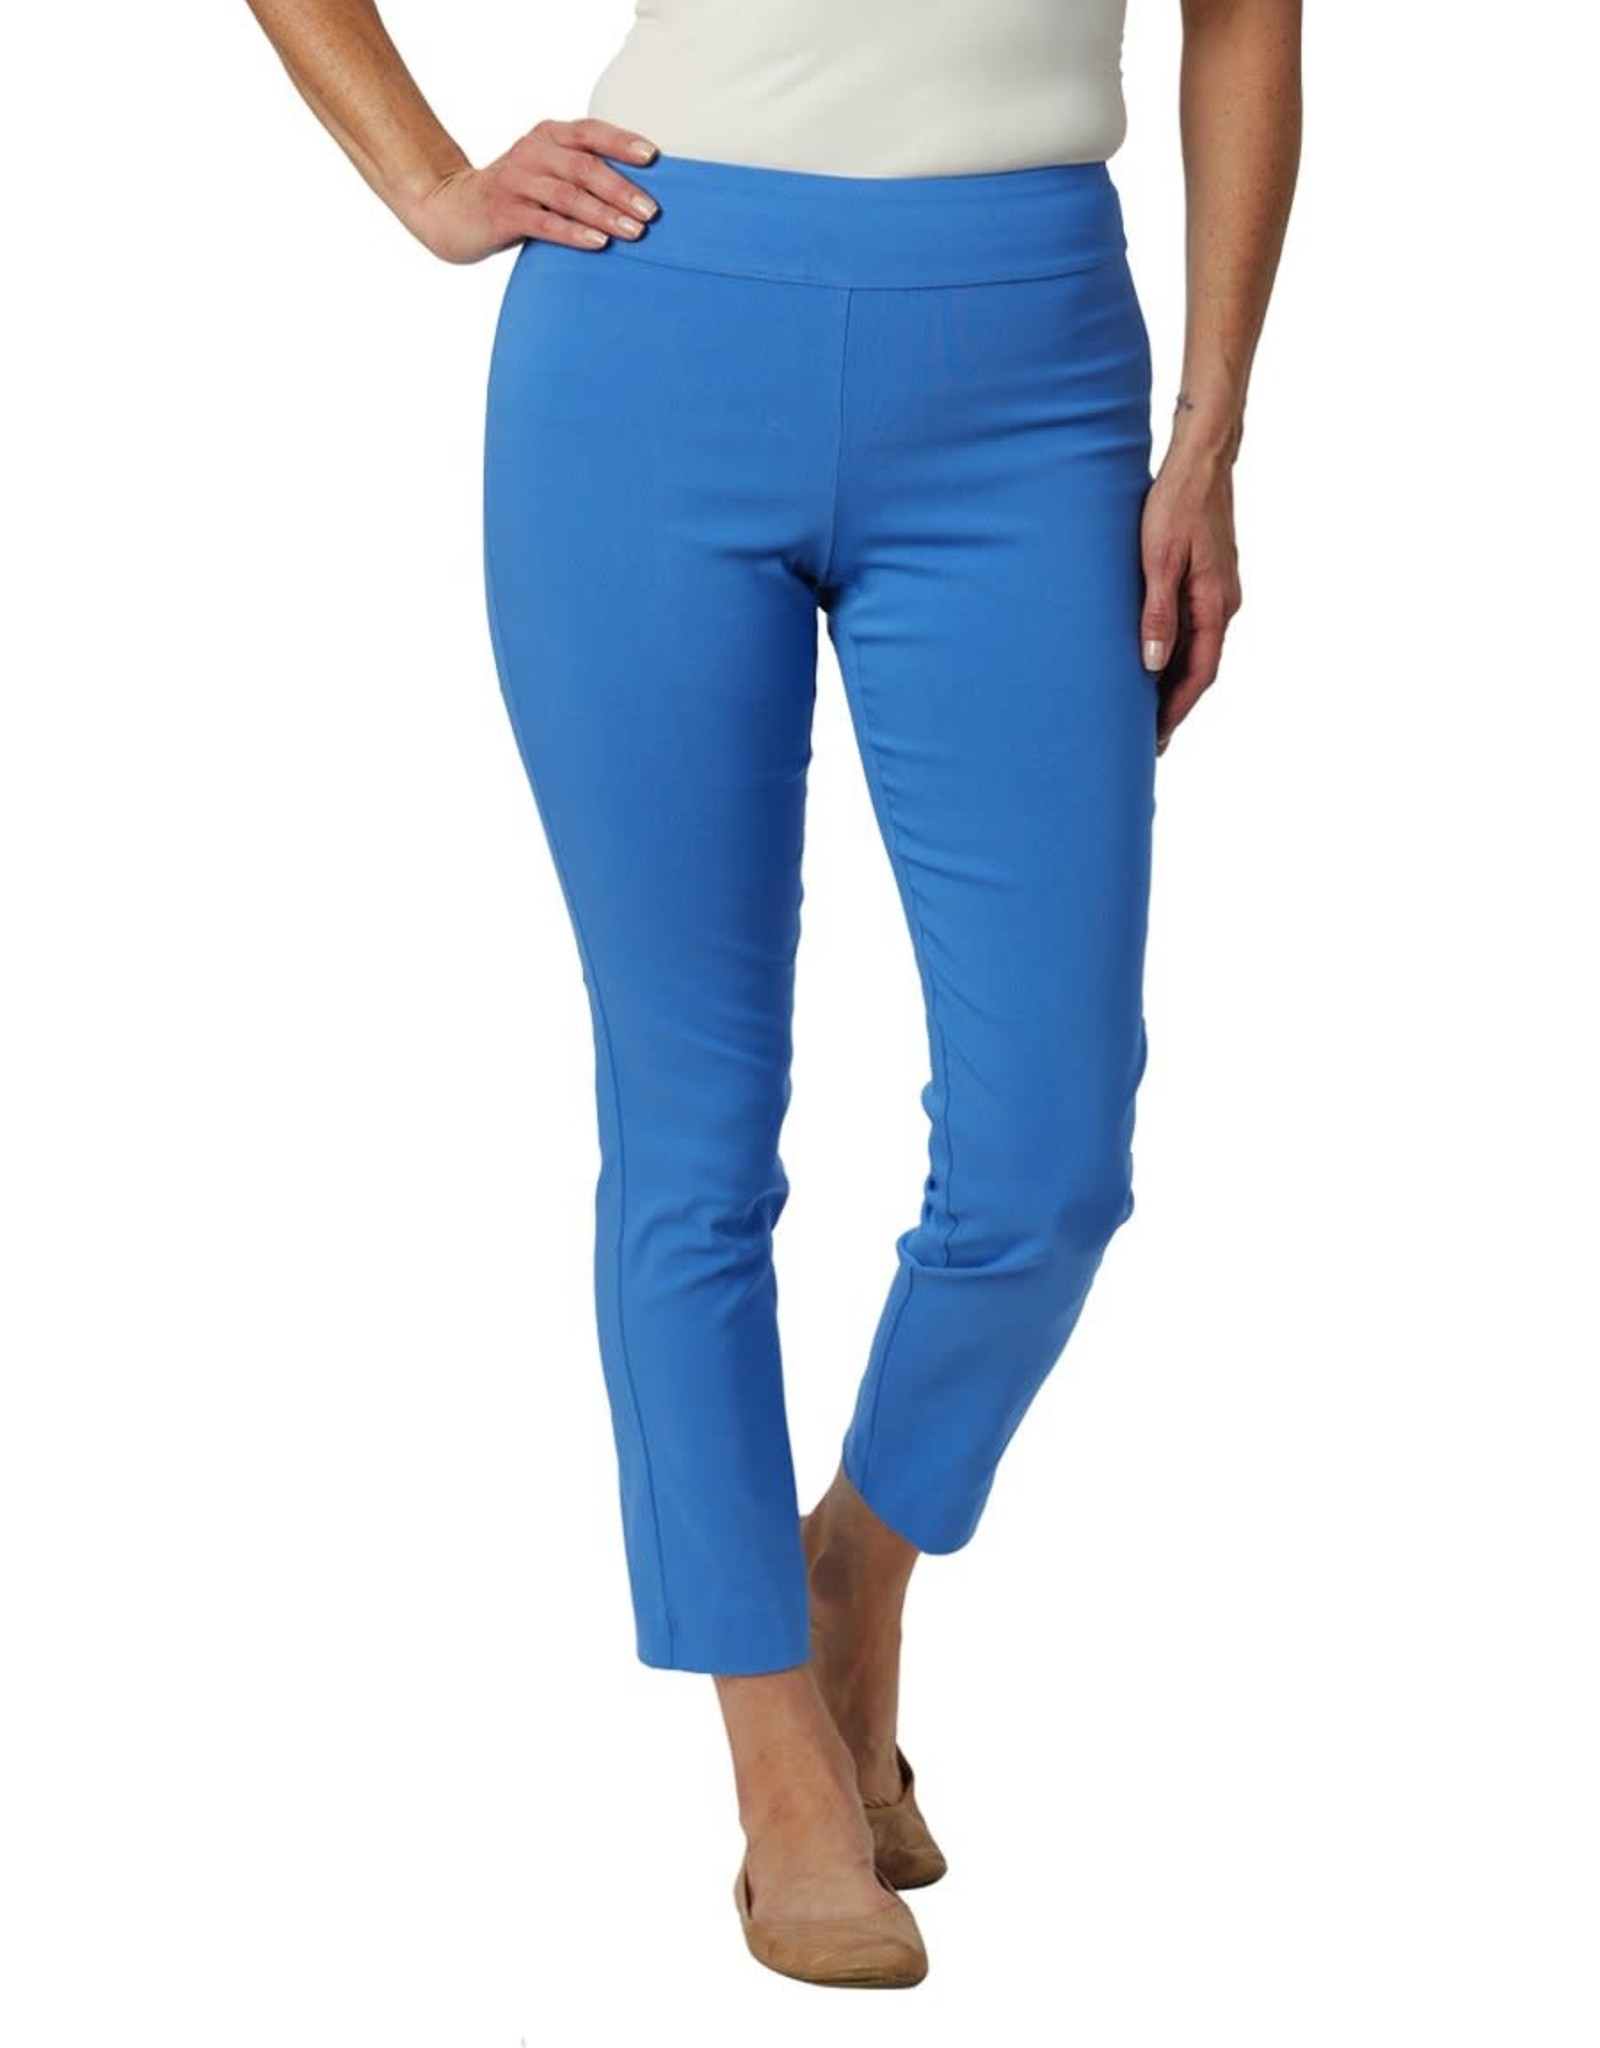 Krazy Larry Pant Krazy Larry's Blue Pull On Pant